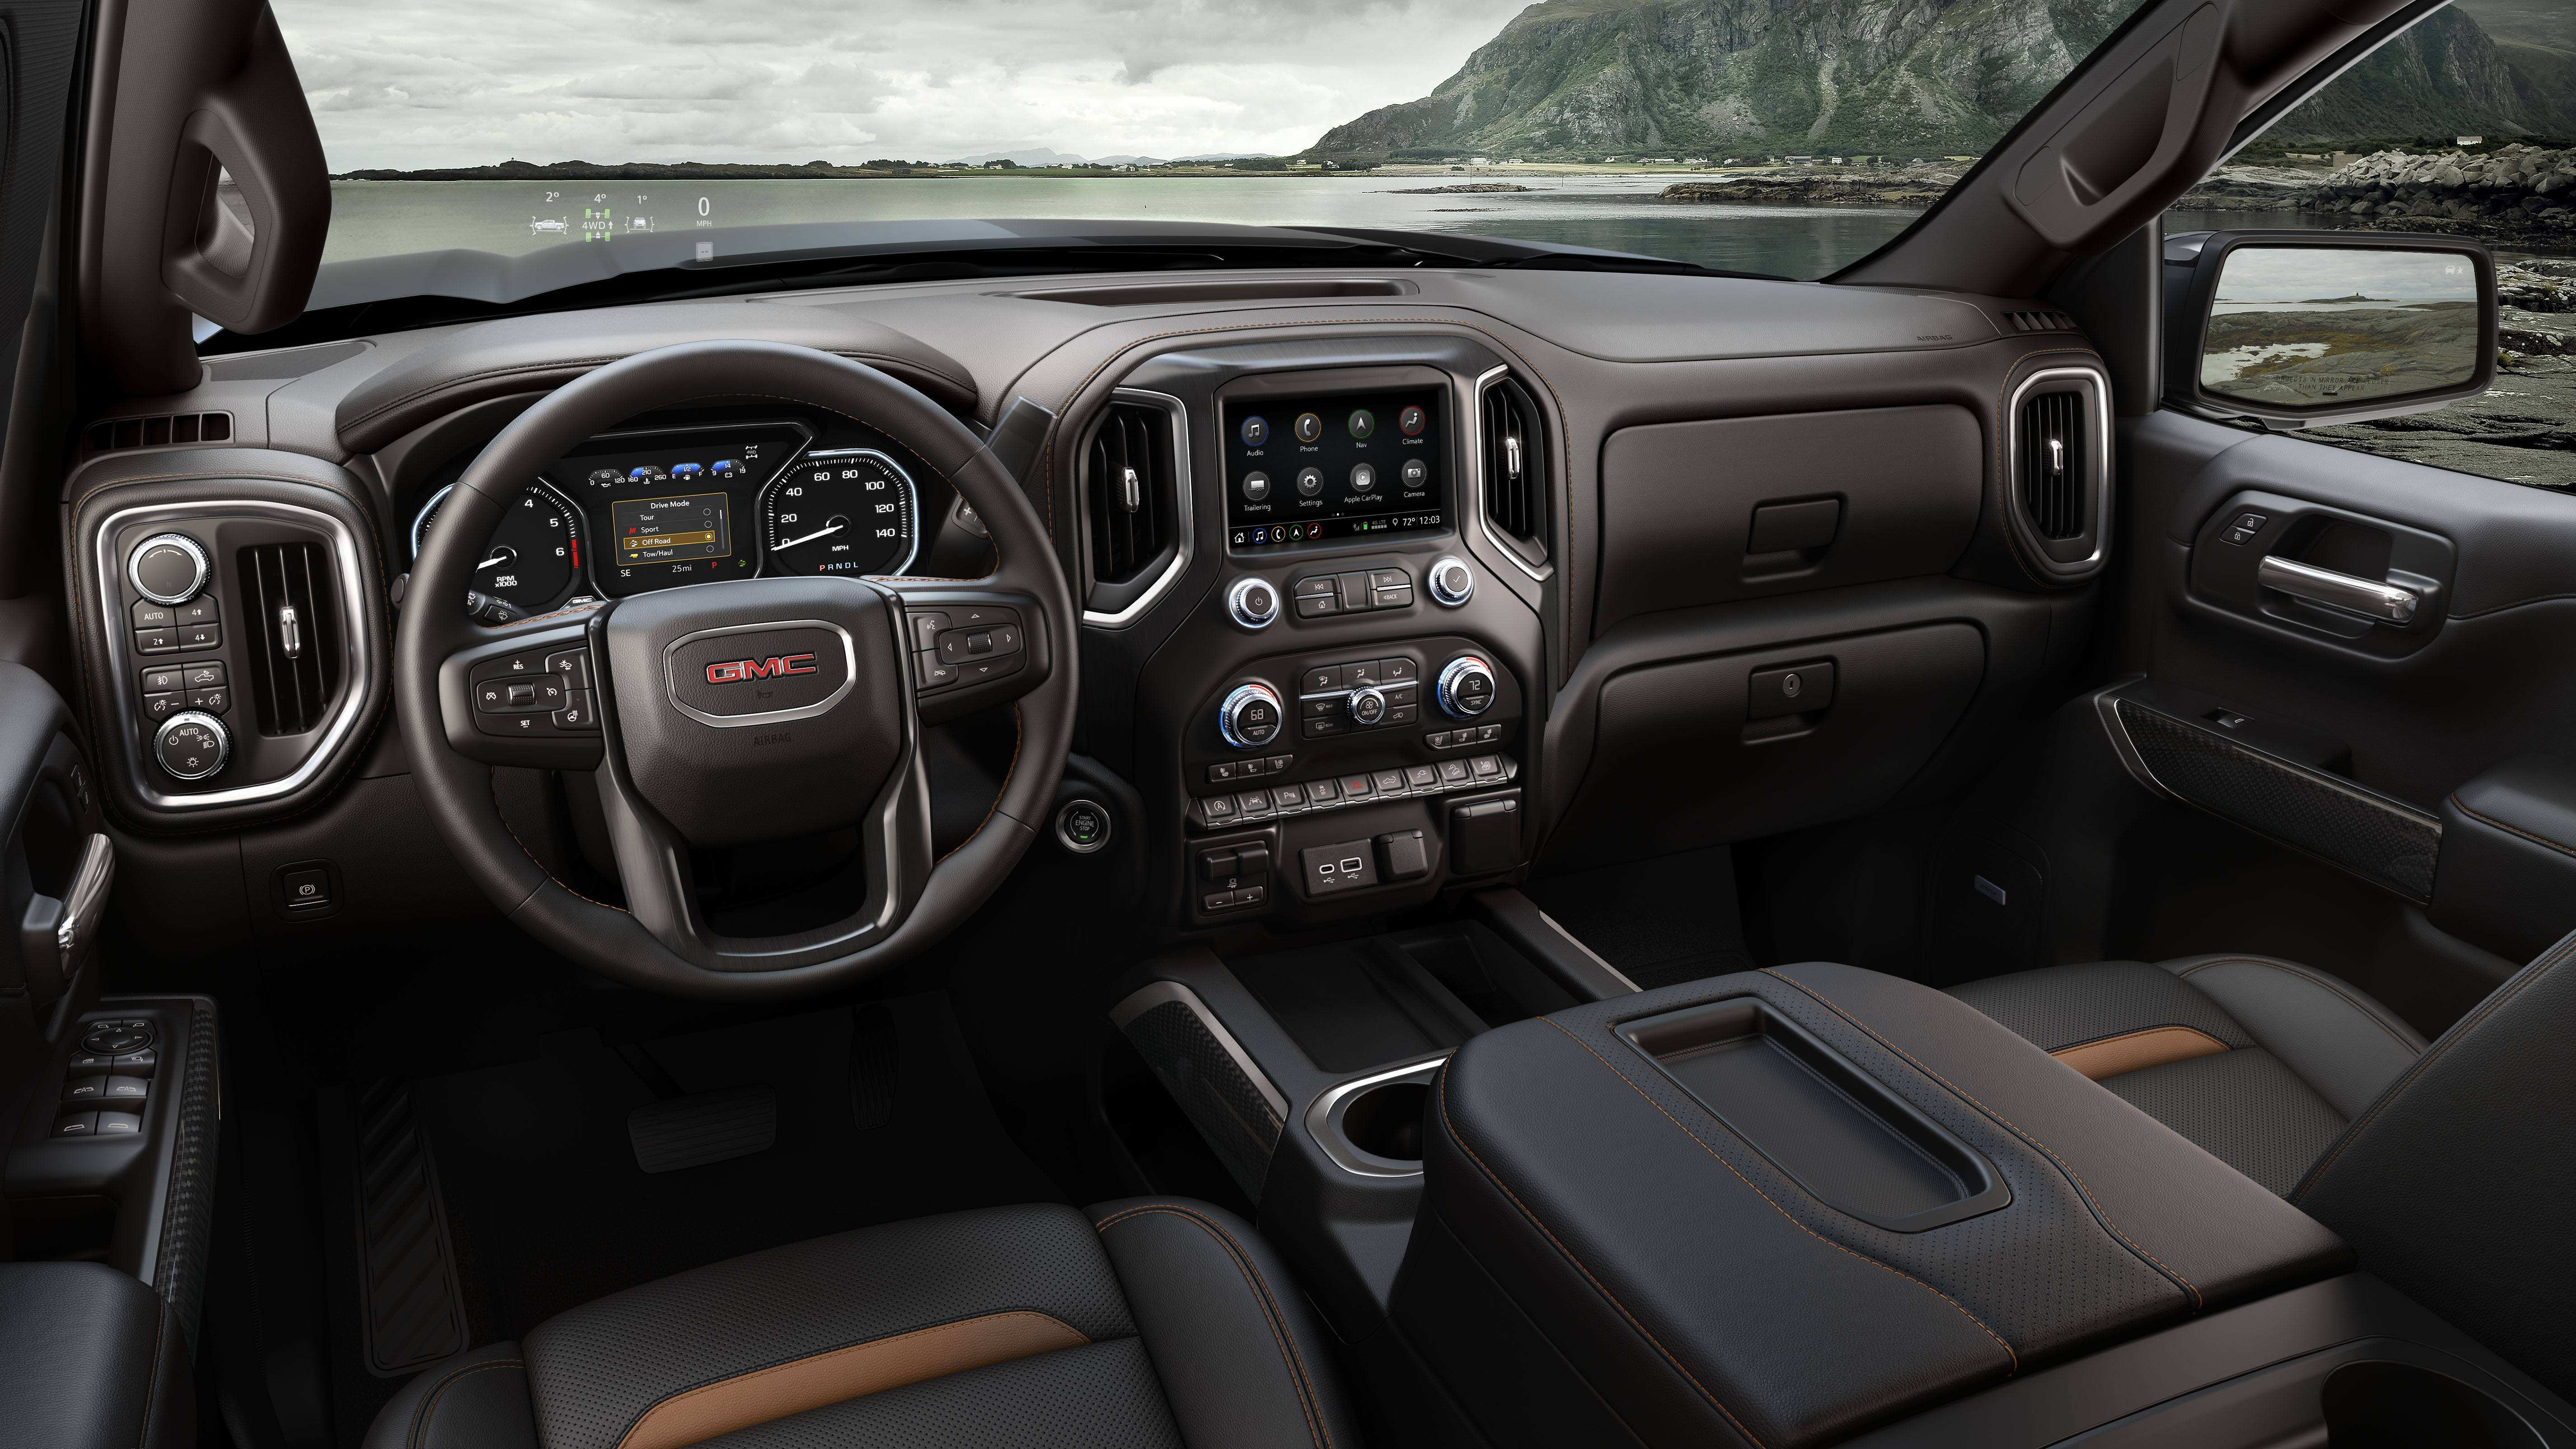 36 New 2019 Gmc Sierra Interior Performance and New Engine by 2019 Gmc Sierra Interior